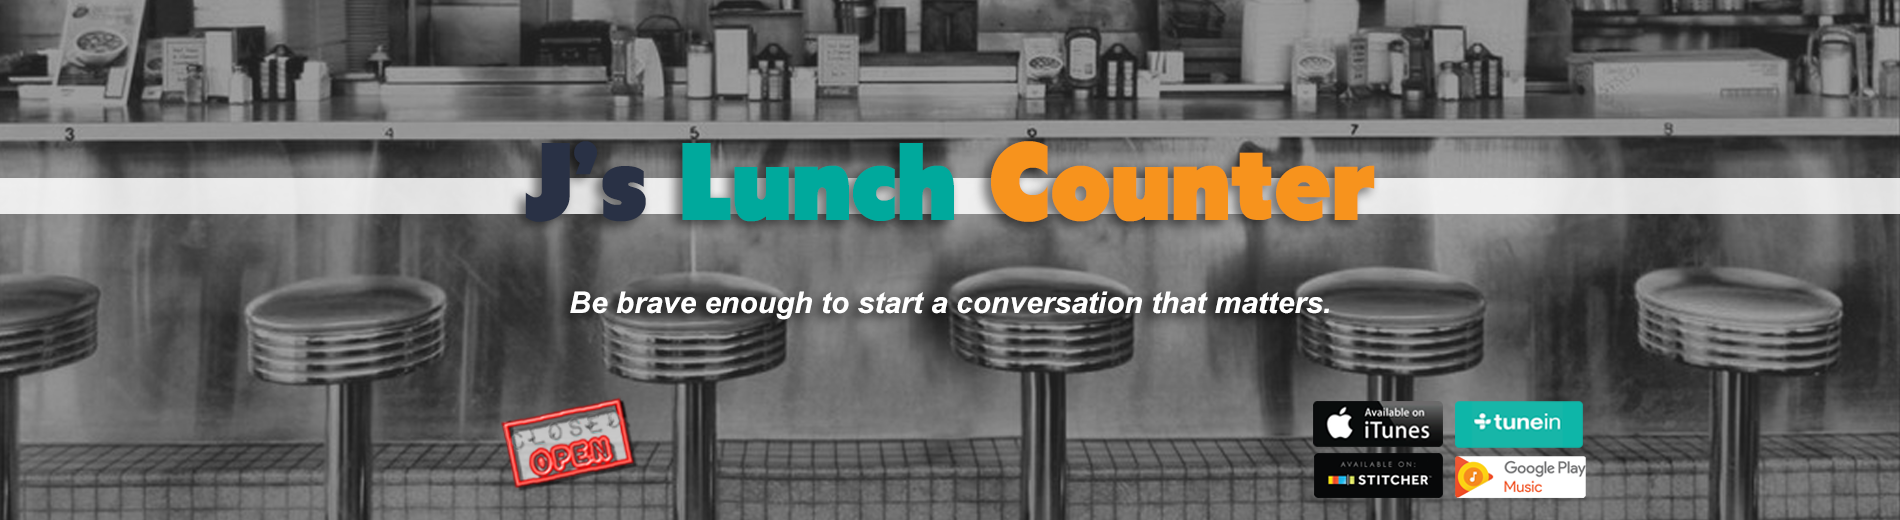 J's Lunch Counter